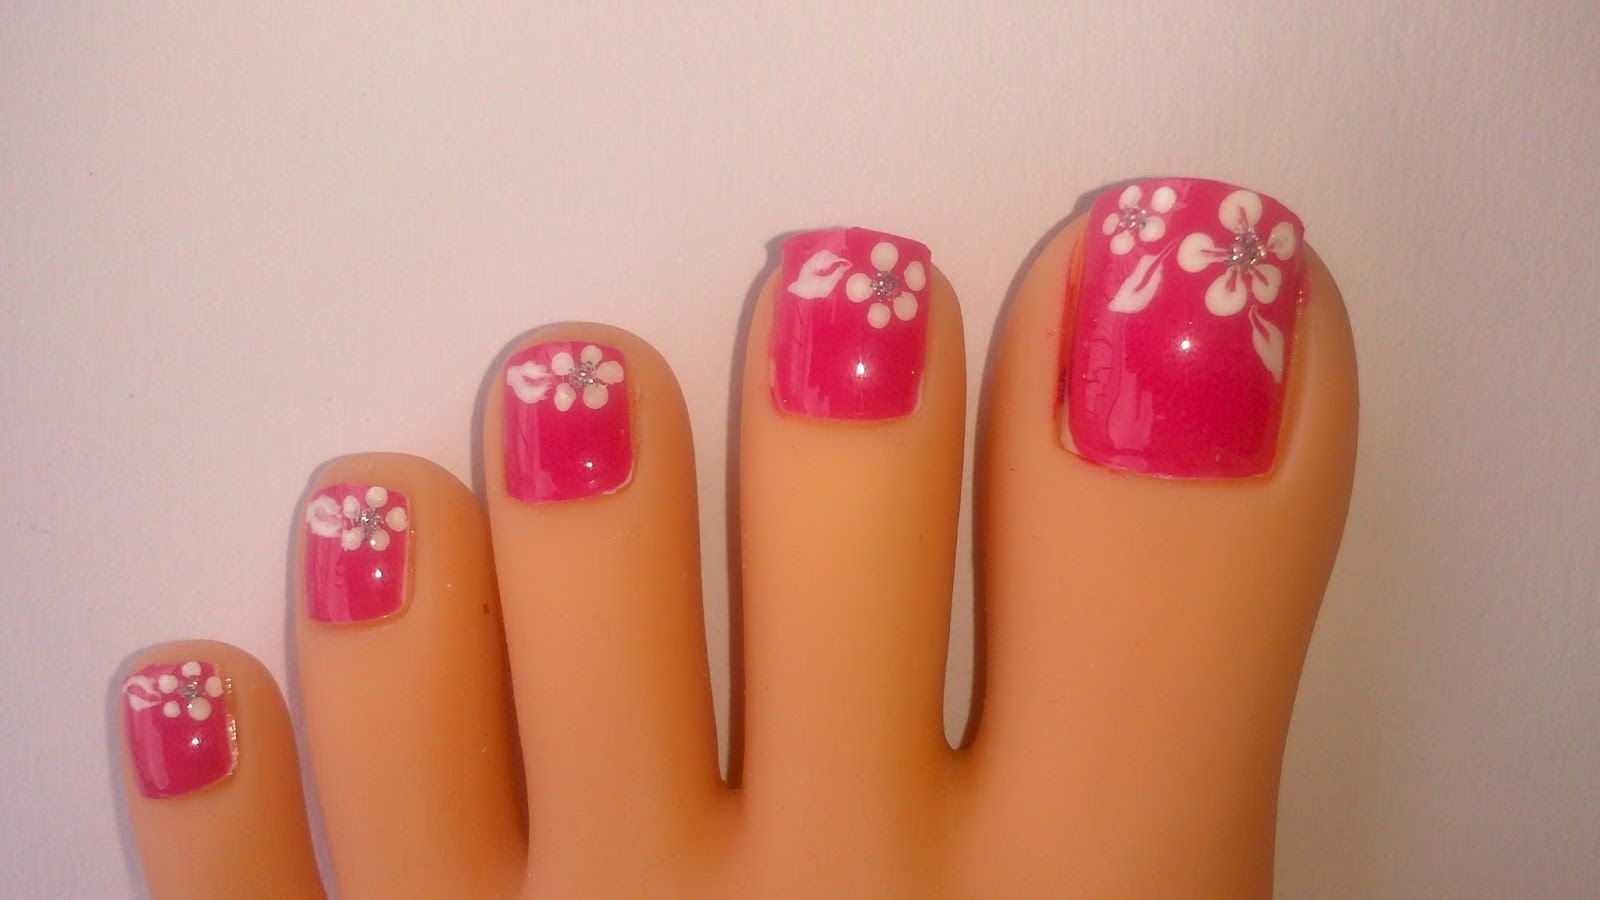 designs for nails only | Lnetsa \'s nailart: Toe nail design + short ...